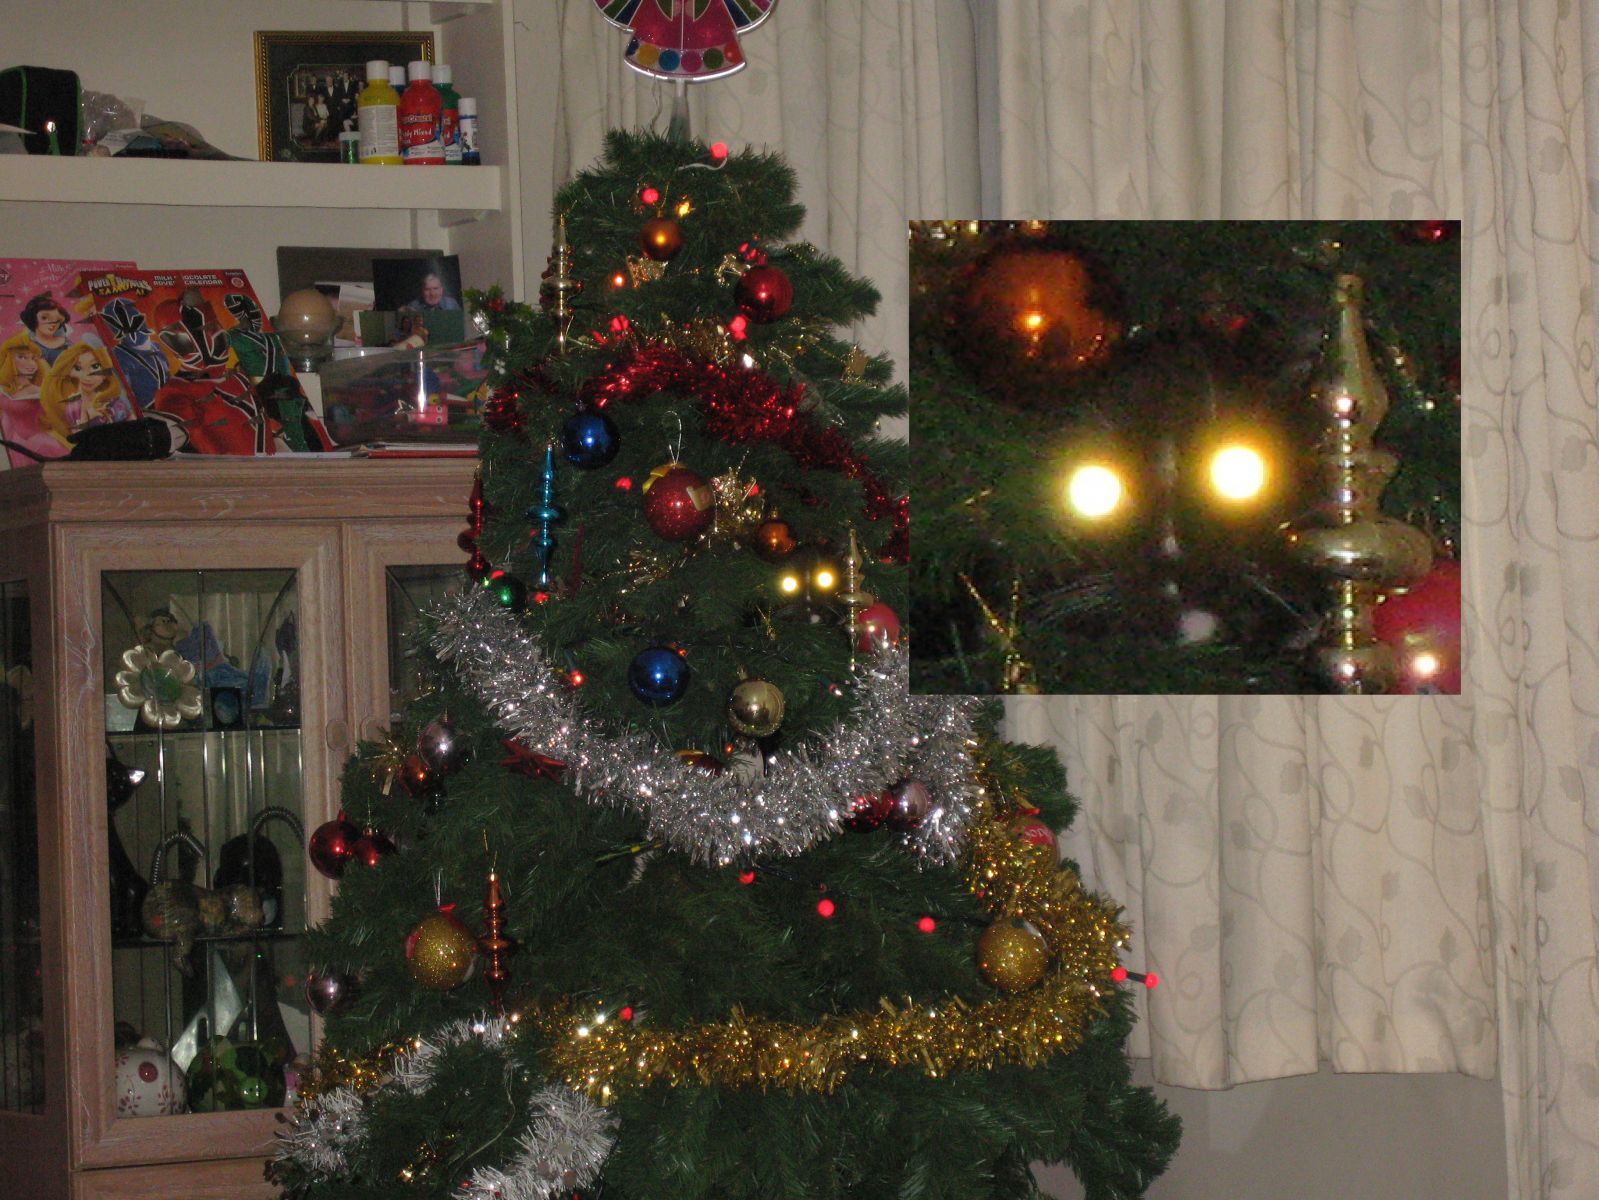 My Cat Declan in My Christmas Tree - Zoomed